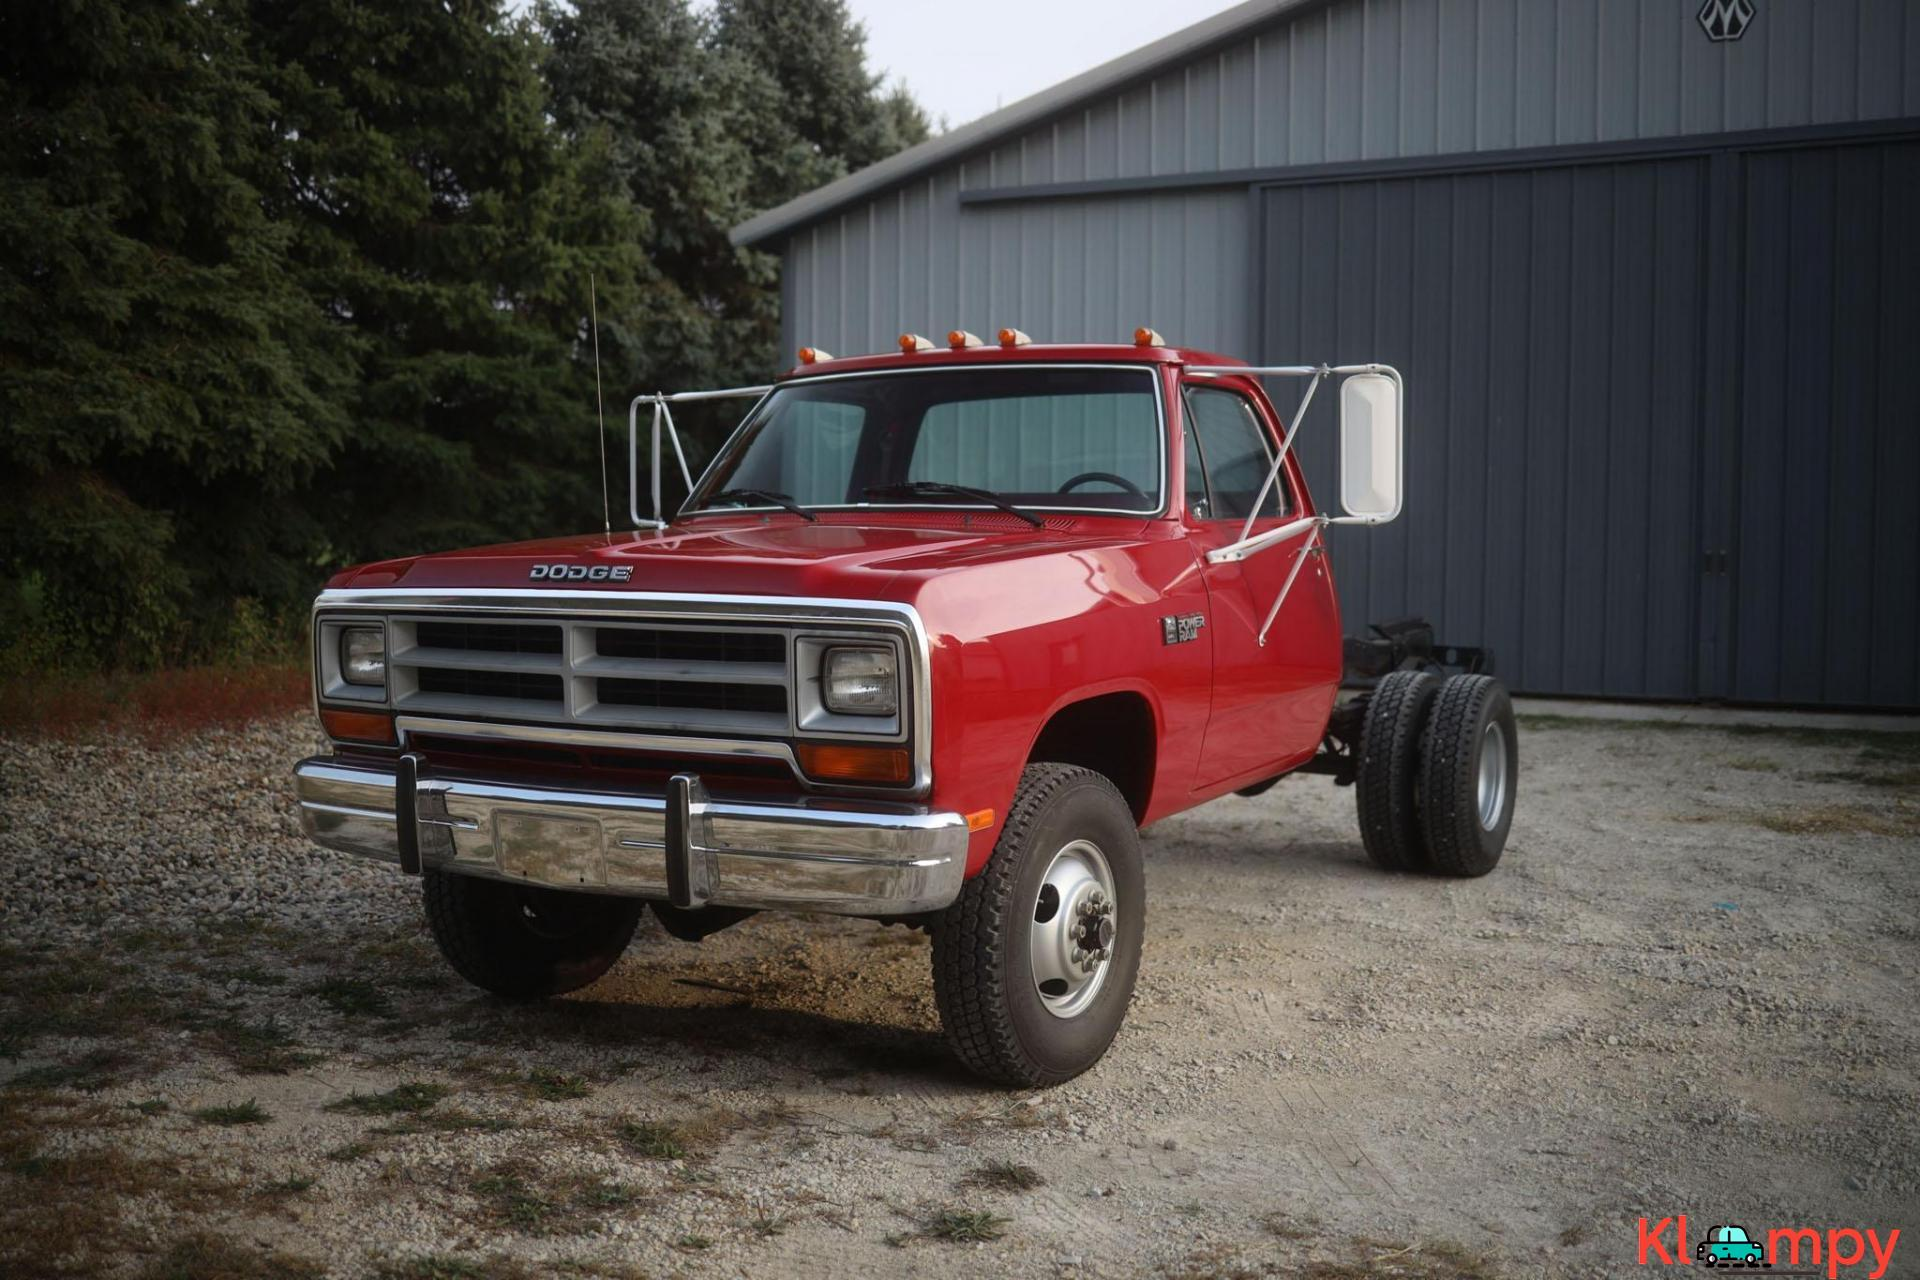 1989 Dodge Power Ram W350 4×4 Truck - 3/20